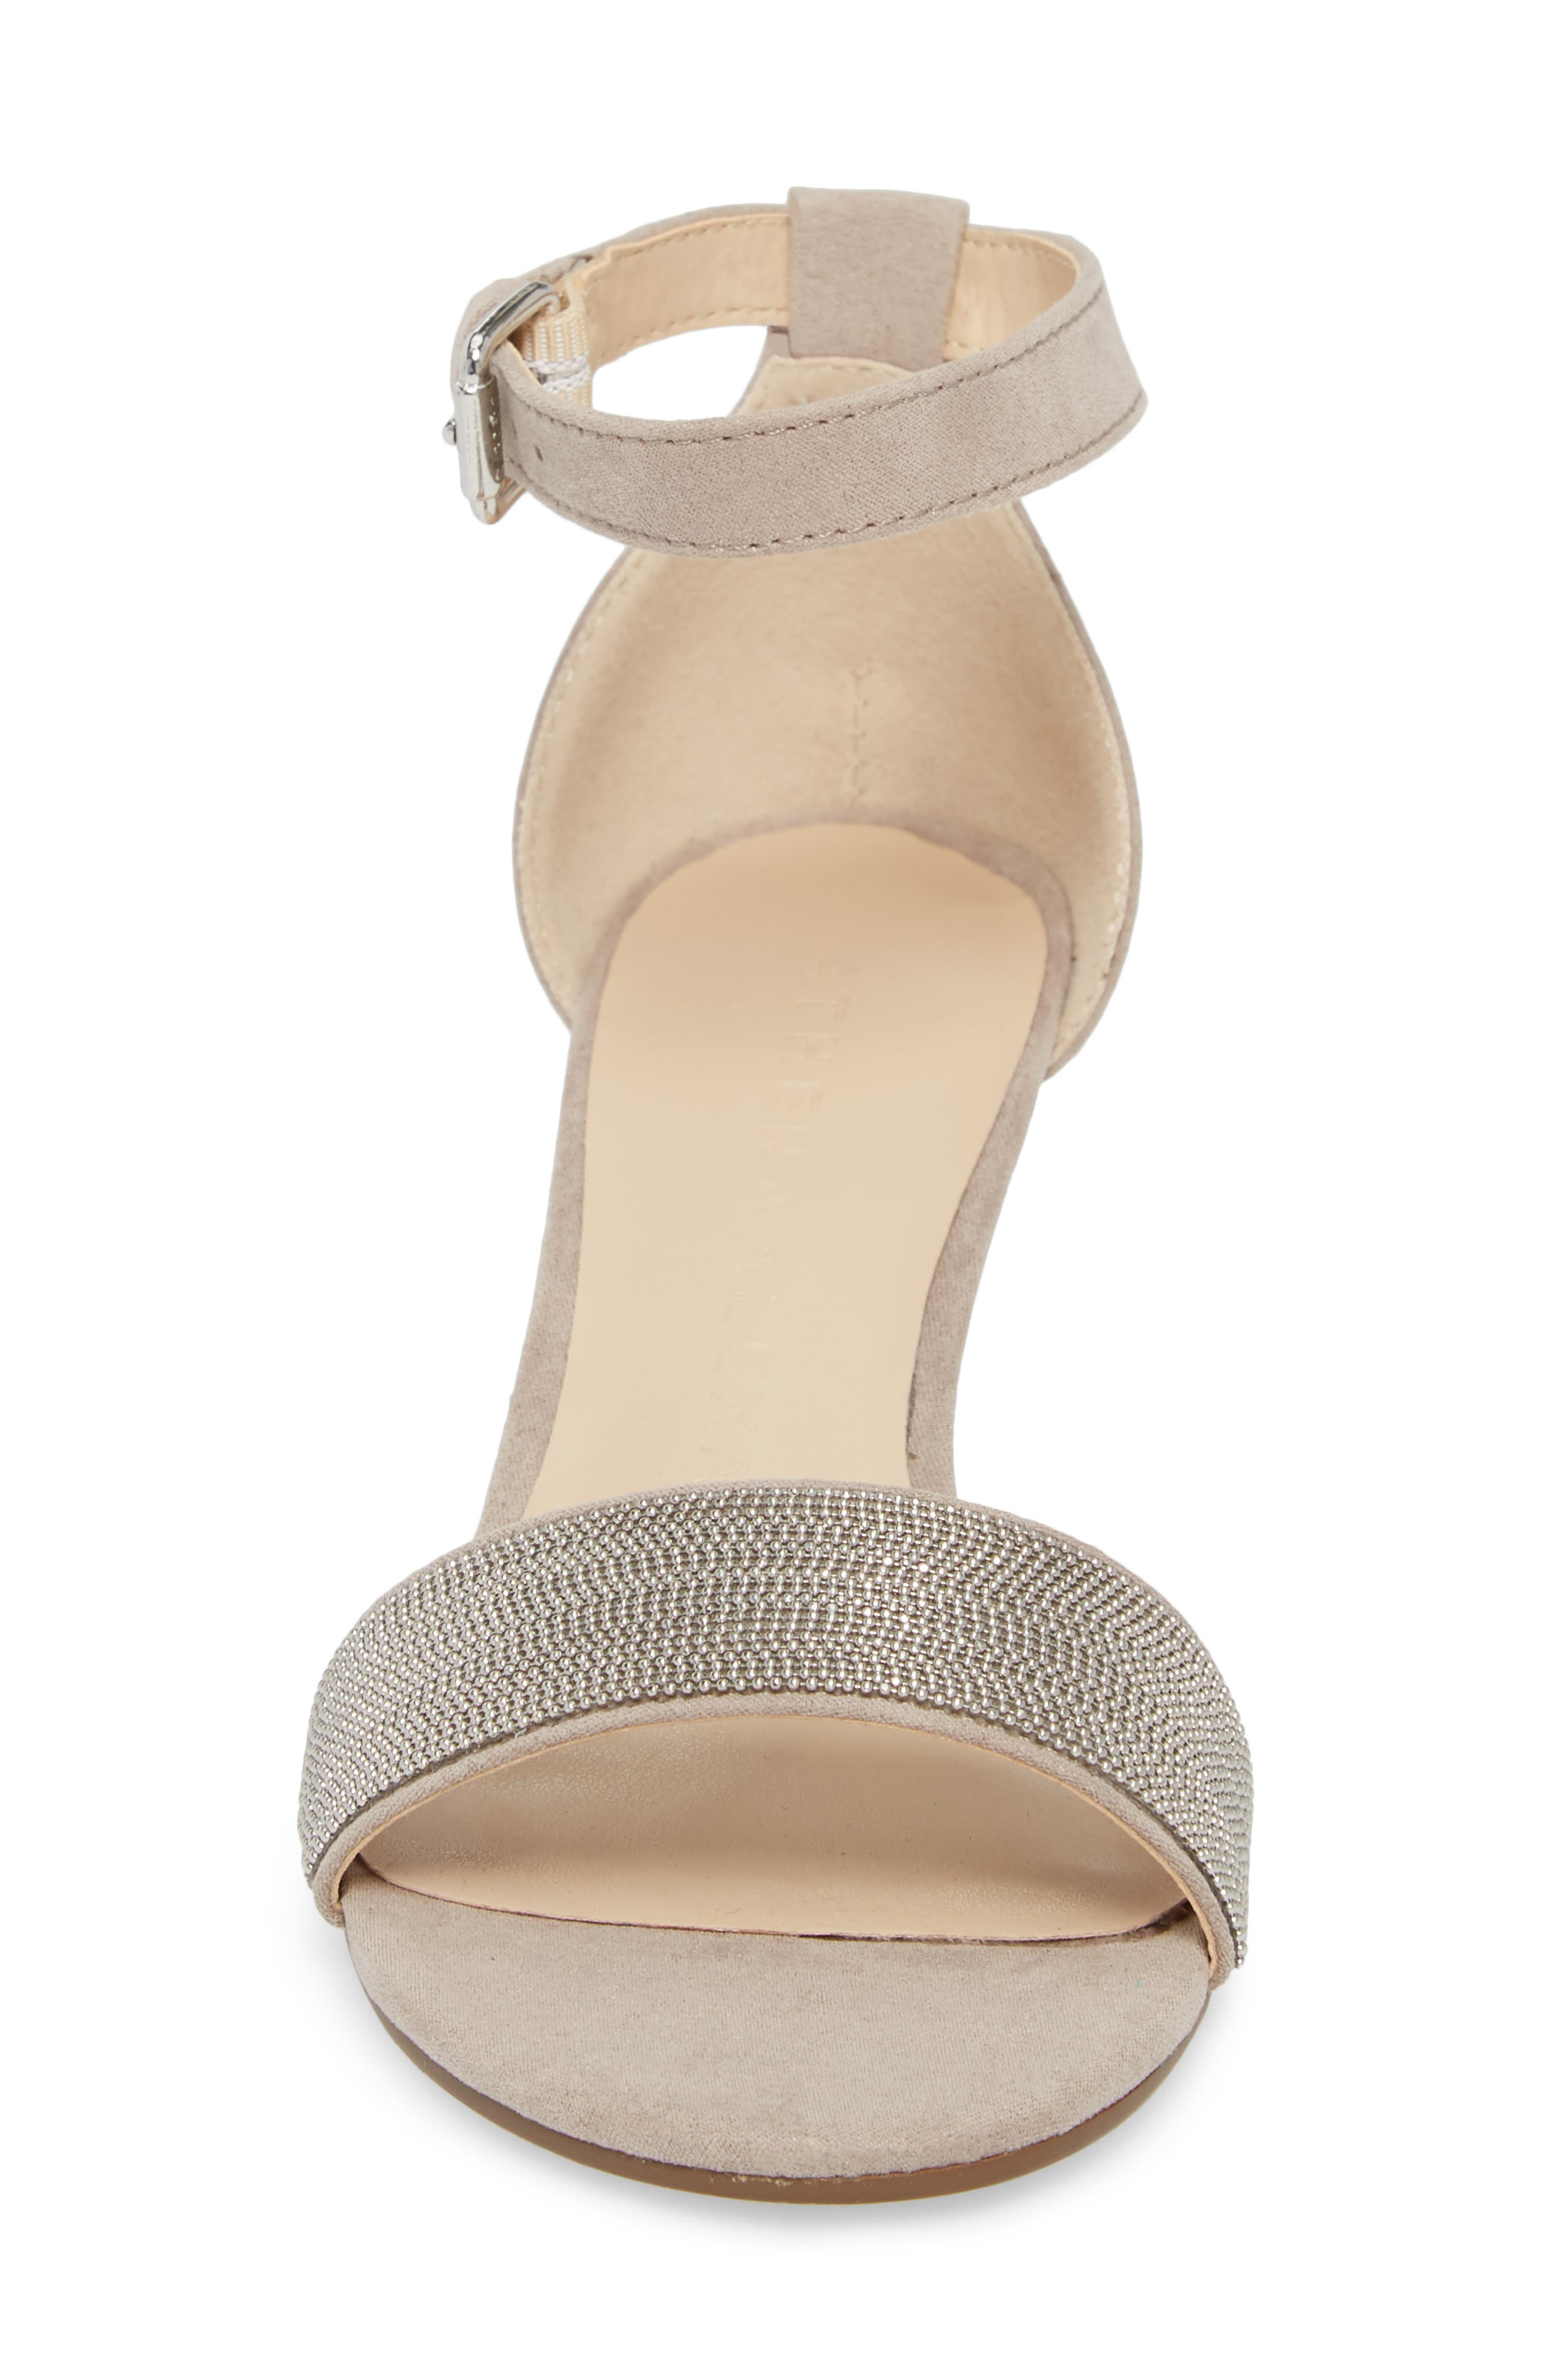 Enfield Ankle Strap Wedge Sandal,                             Alternate thumbnail 4, color,                             Taupe Suede